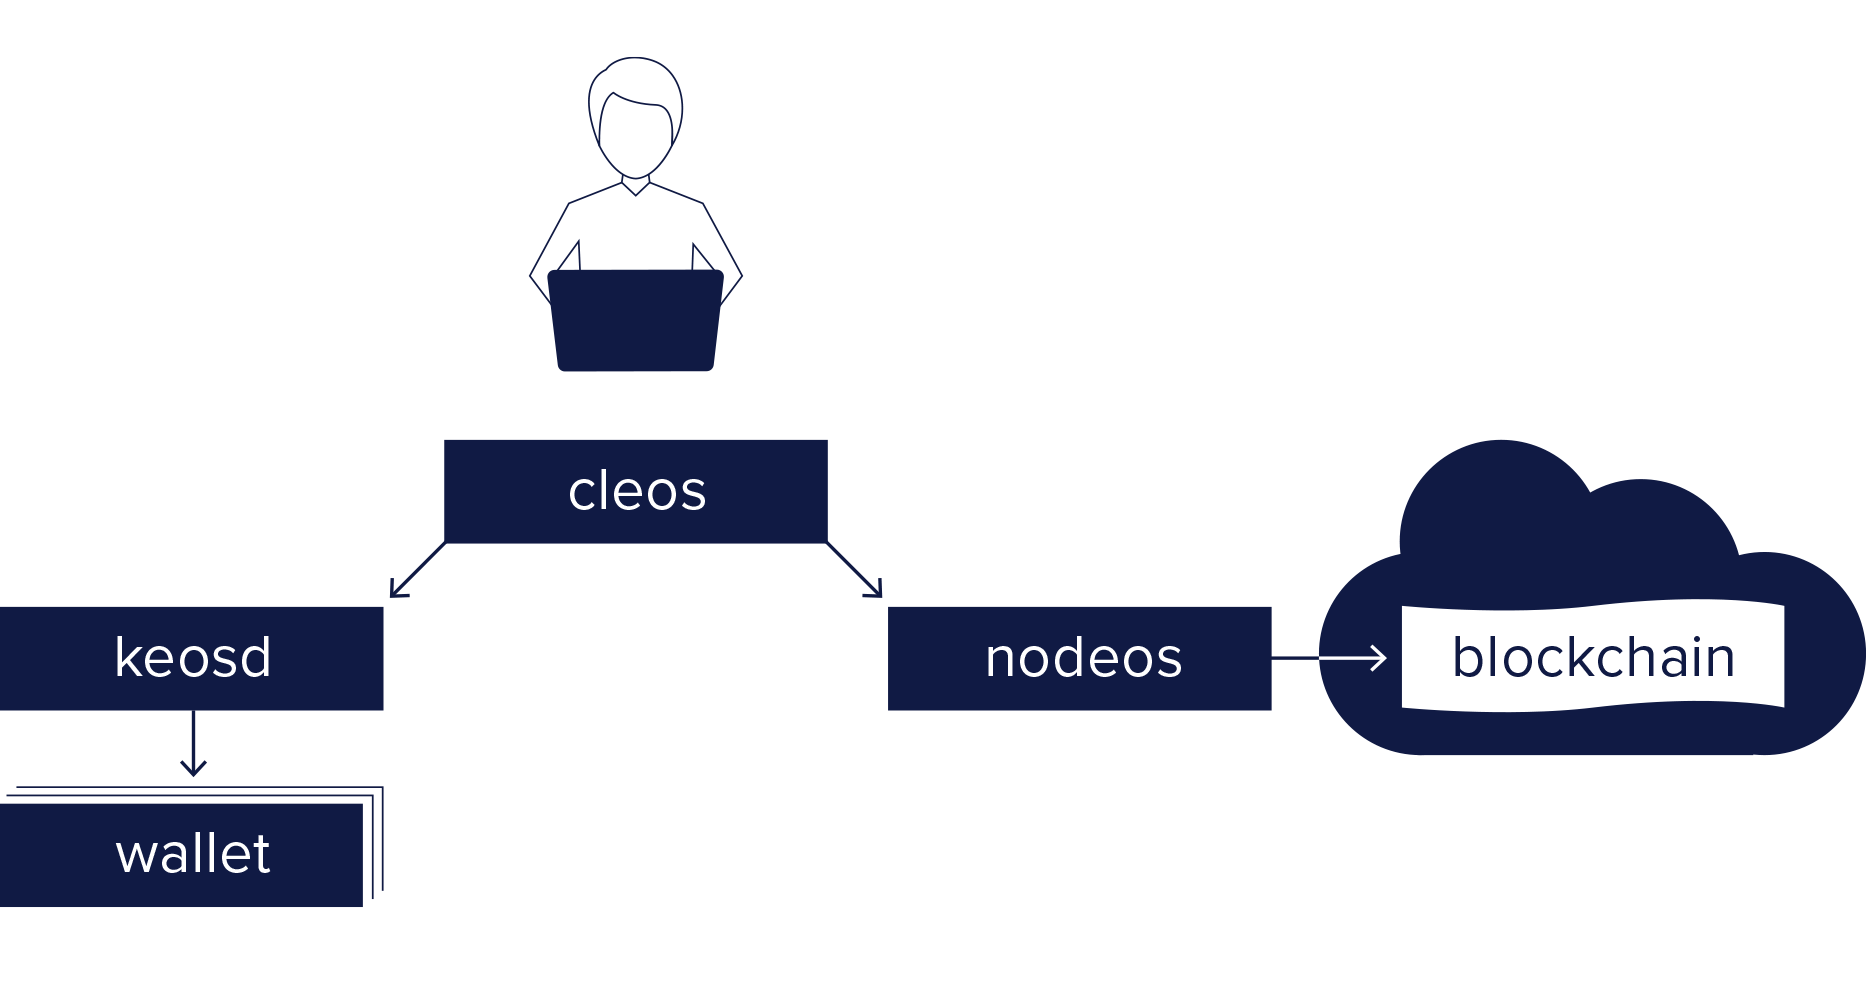 582e059-411_DevRelations_NodeosGraphic_Option3.png